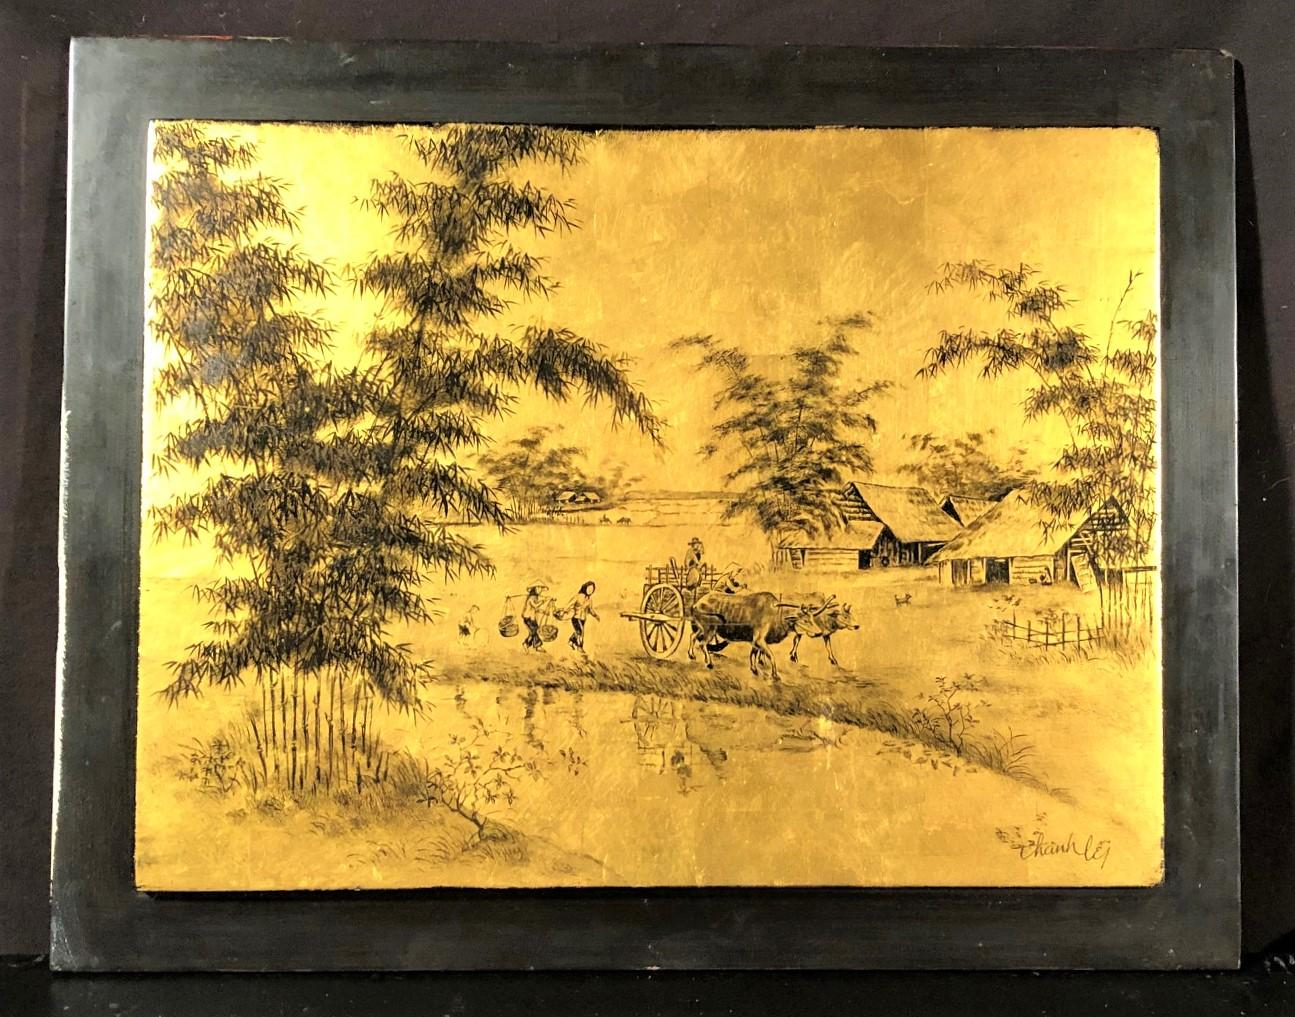 THANH LE CONG (1931-NOW) ORIGINAL LACQUER ON PANEL PAINTING MEASURES 15in x 19in